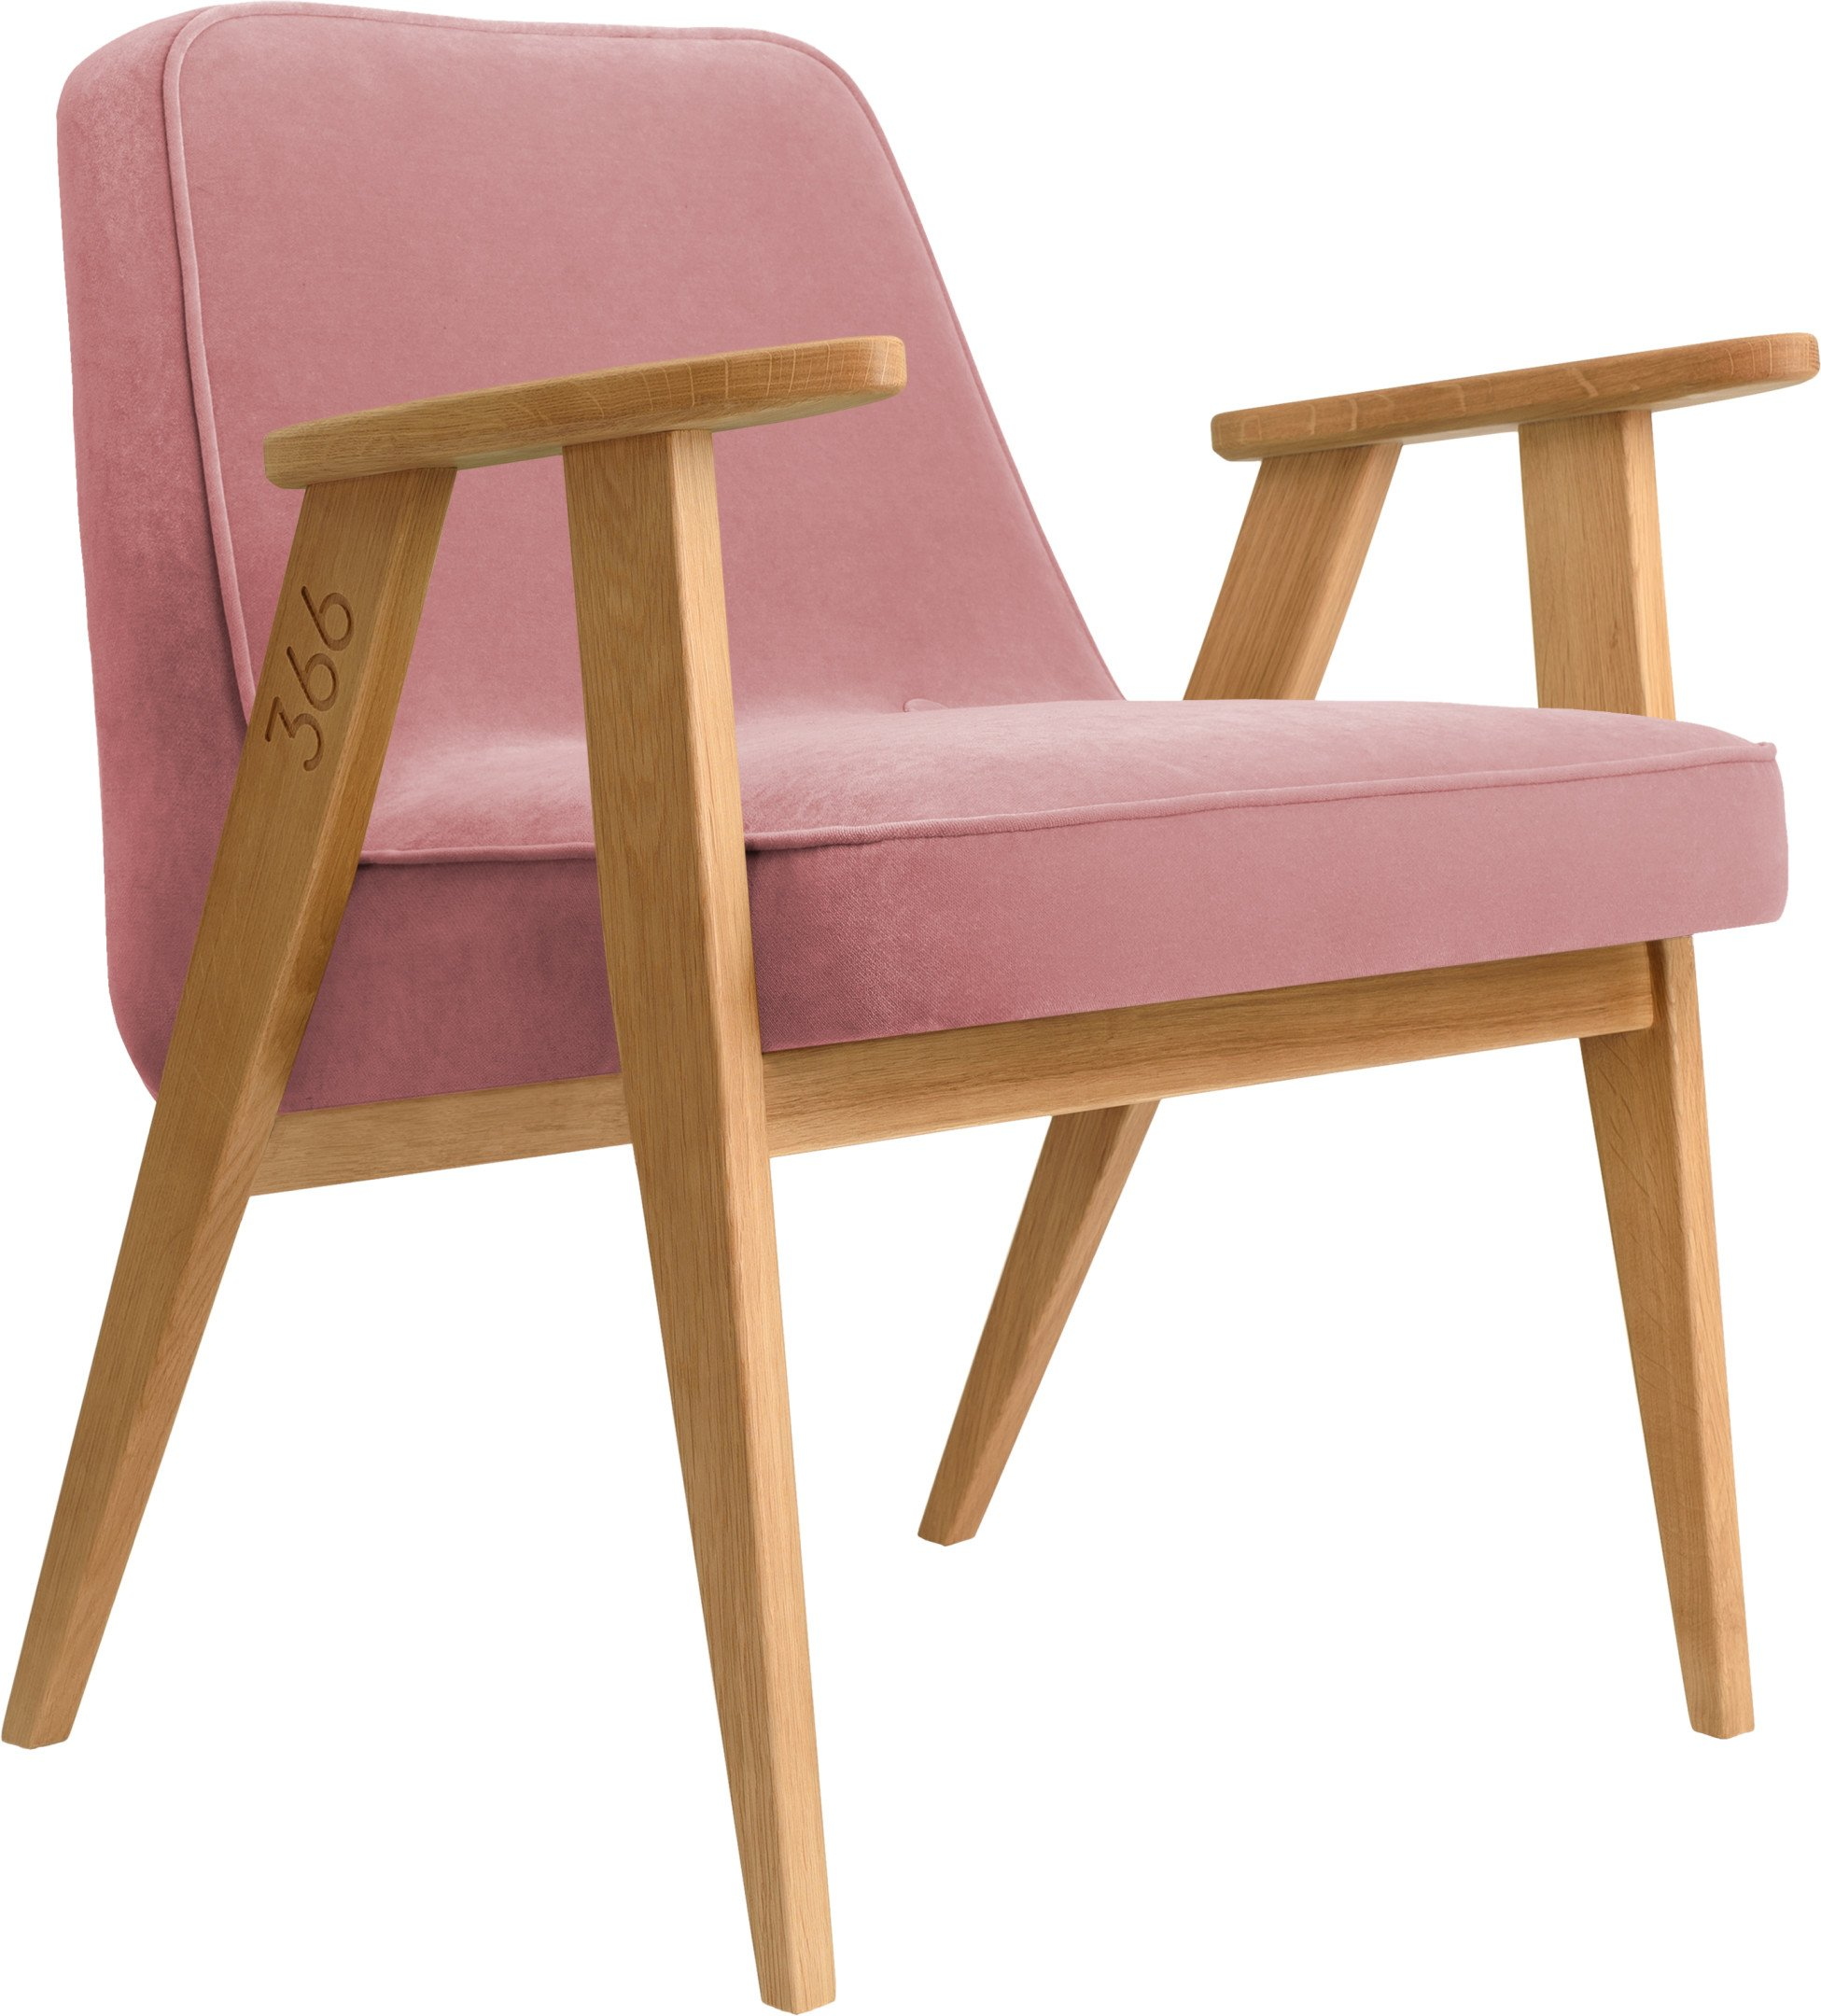 366 Armchair by Józef Chierowski, Velvet Powder Pink (light oak)